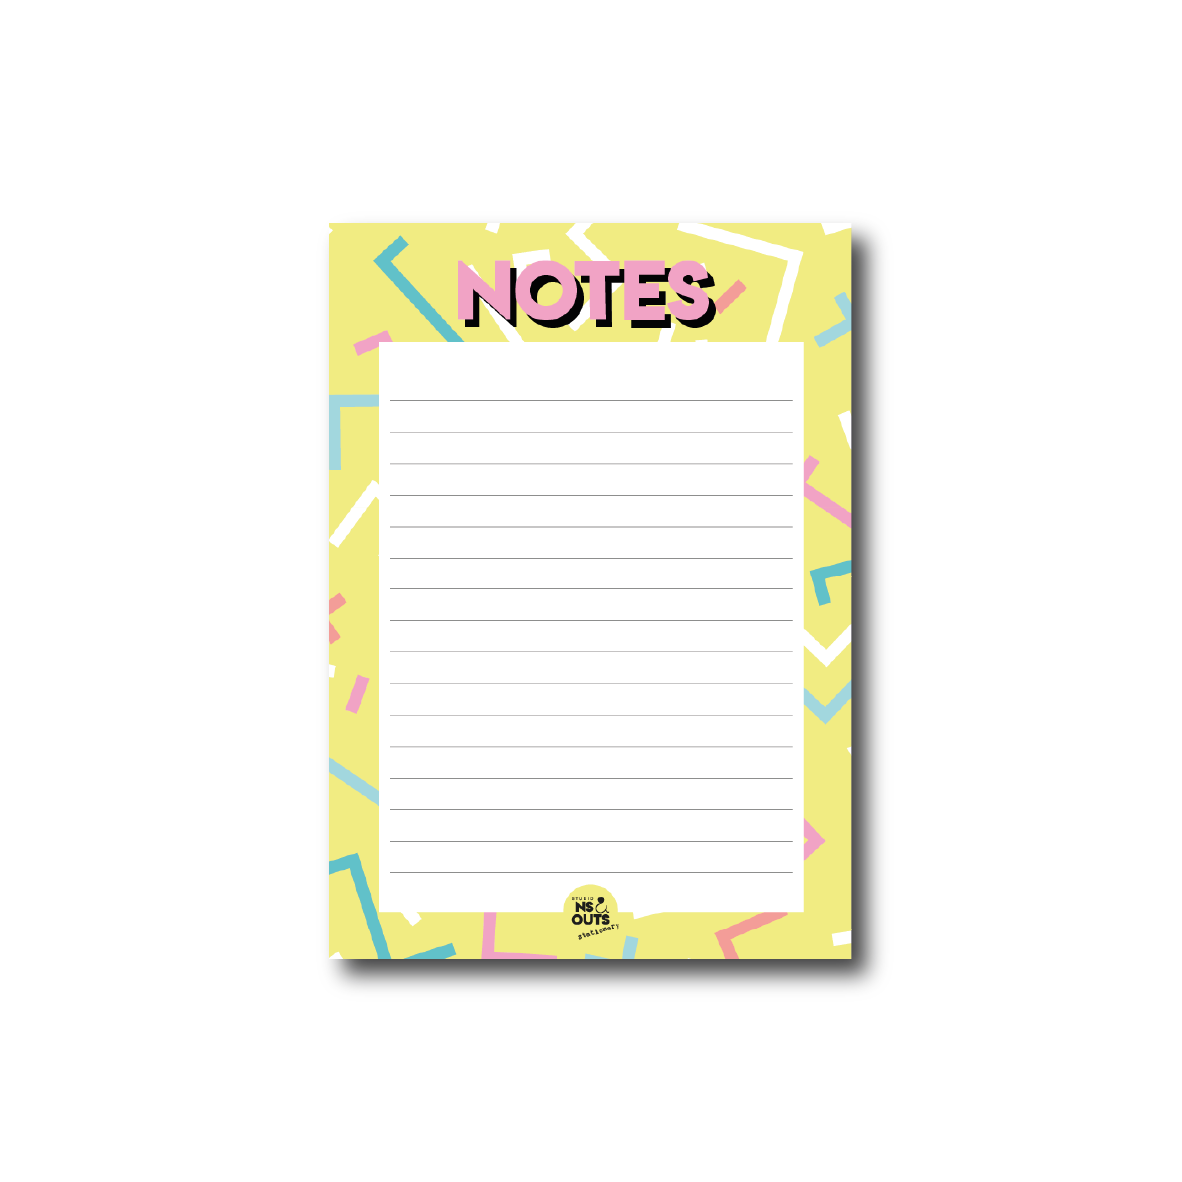 A6 notepad | Notes